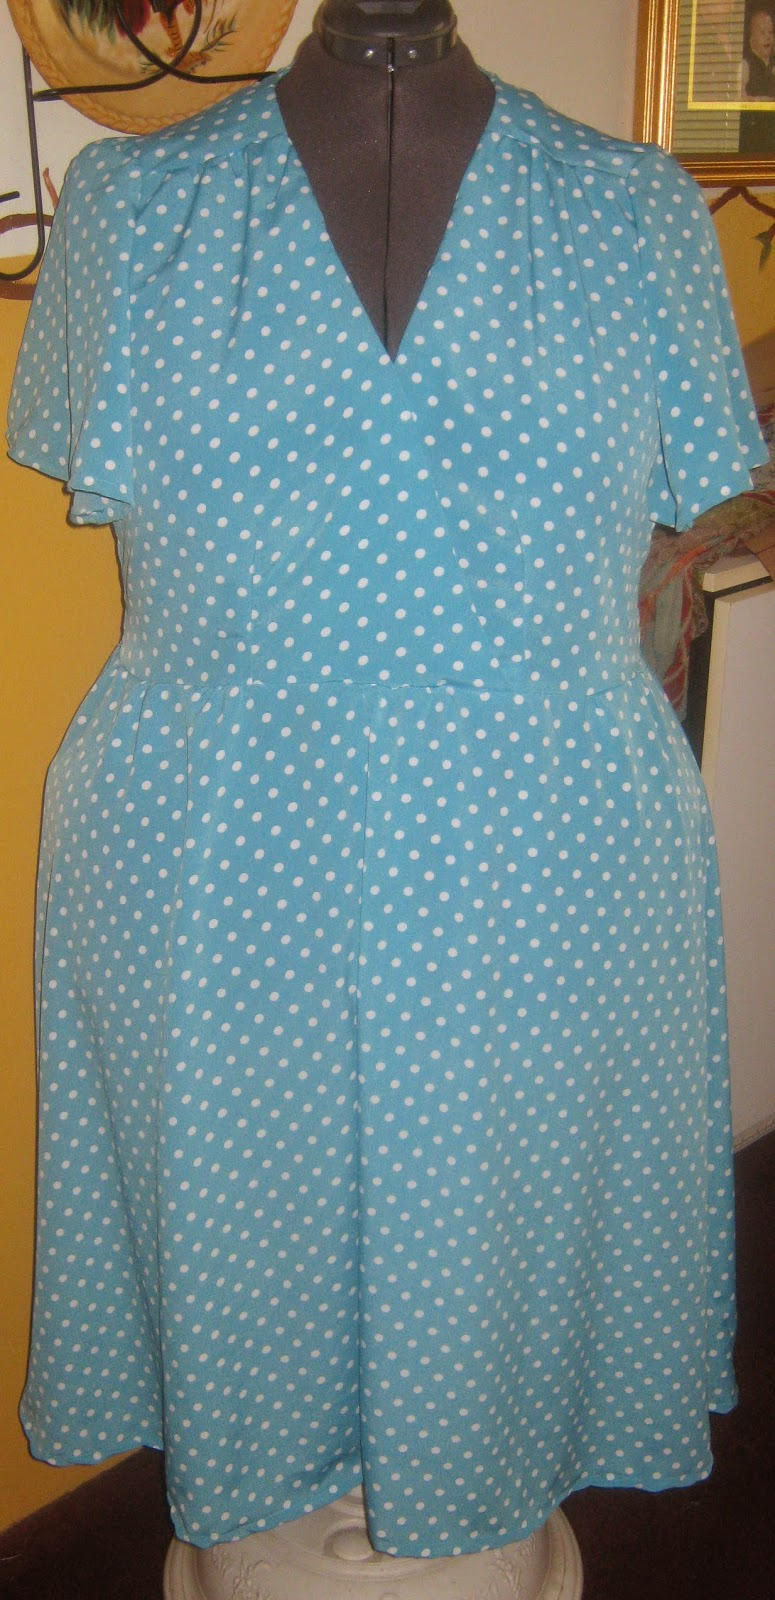 Butterick 5030 Easter Dress Aqua Polka Dot www.sewplus.blogspot.com